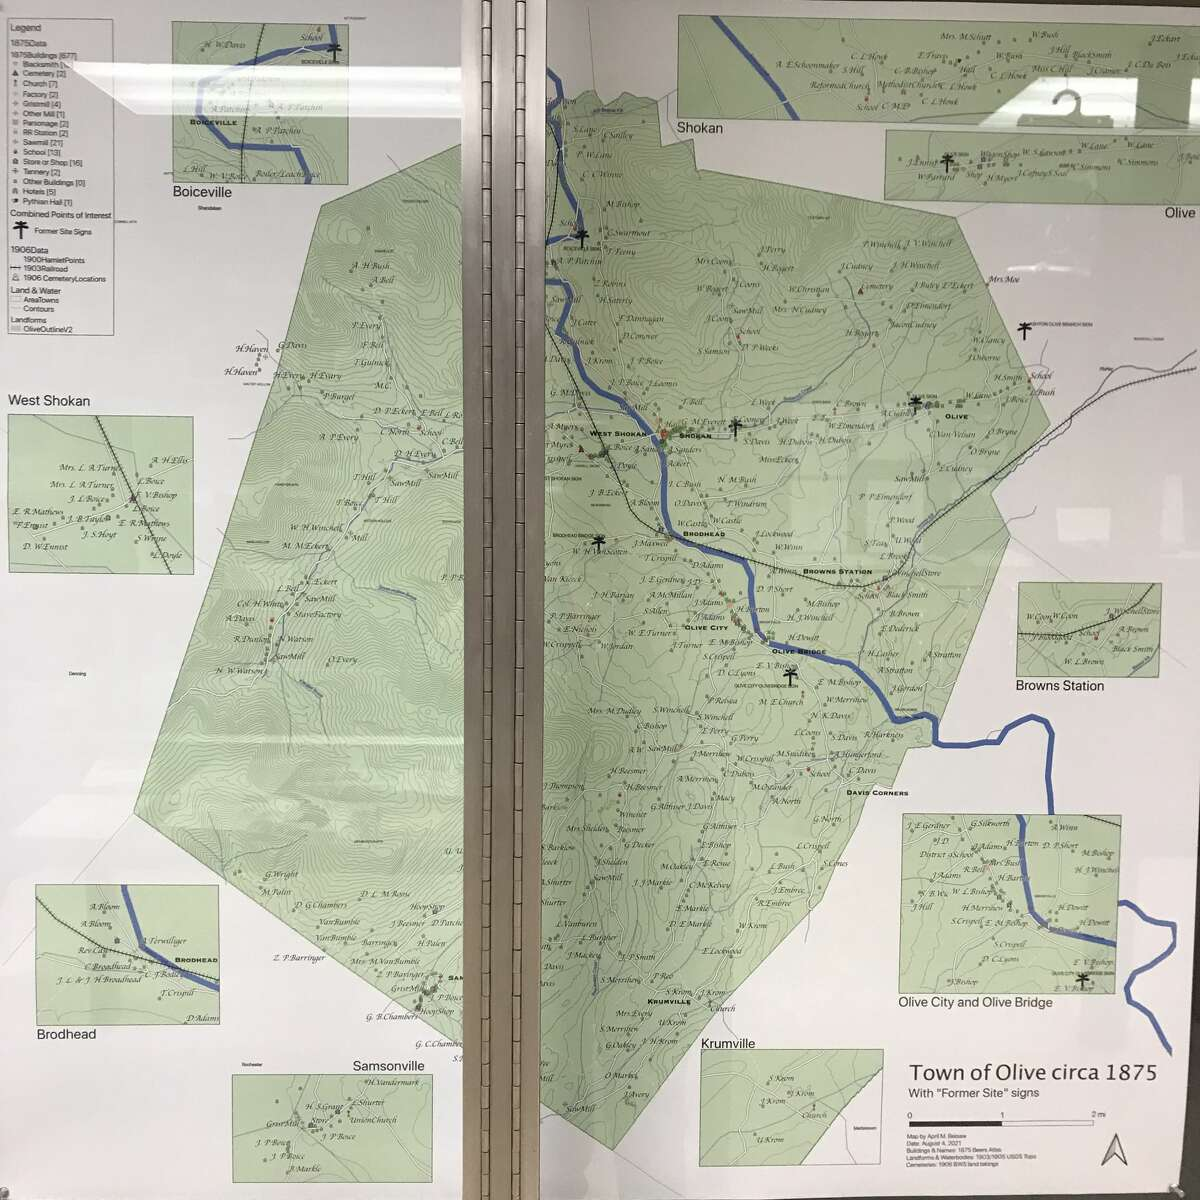 """The Olive Free Library is hosting an exhibit, """"Our Lost Community: Life Before the Reservoir,"""" featuring ledgers, maps, deeds and numerous photos of the old hamlets. Dr. Beisaw contributed this map of the original location of the hamlets displaced and destroyed in the making of the reservoir."""